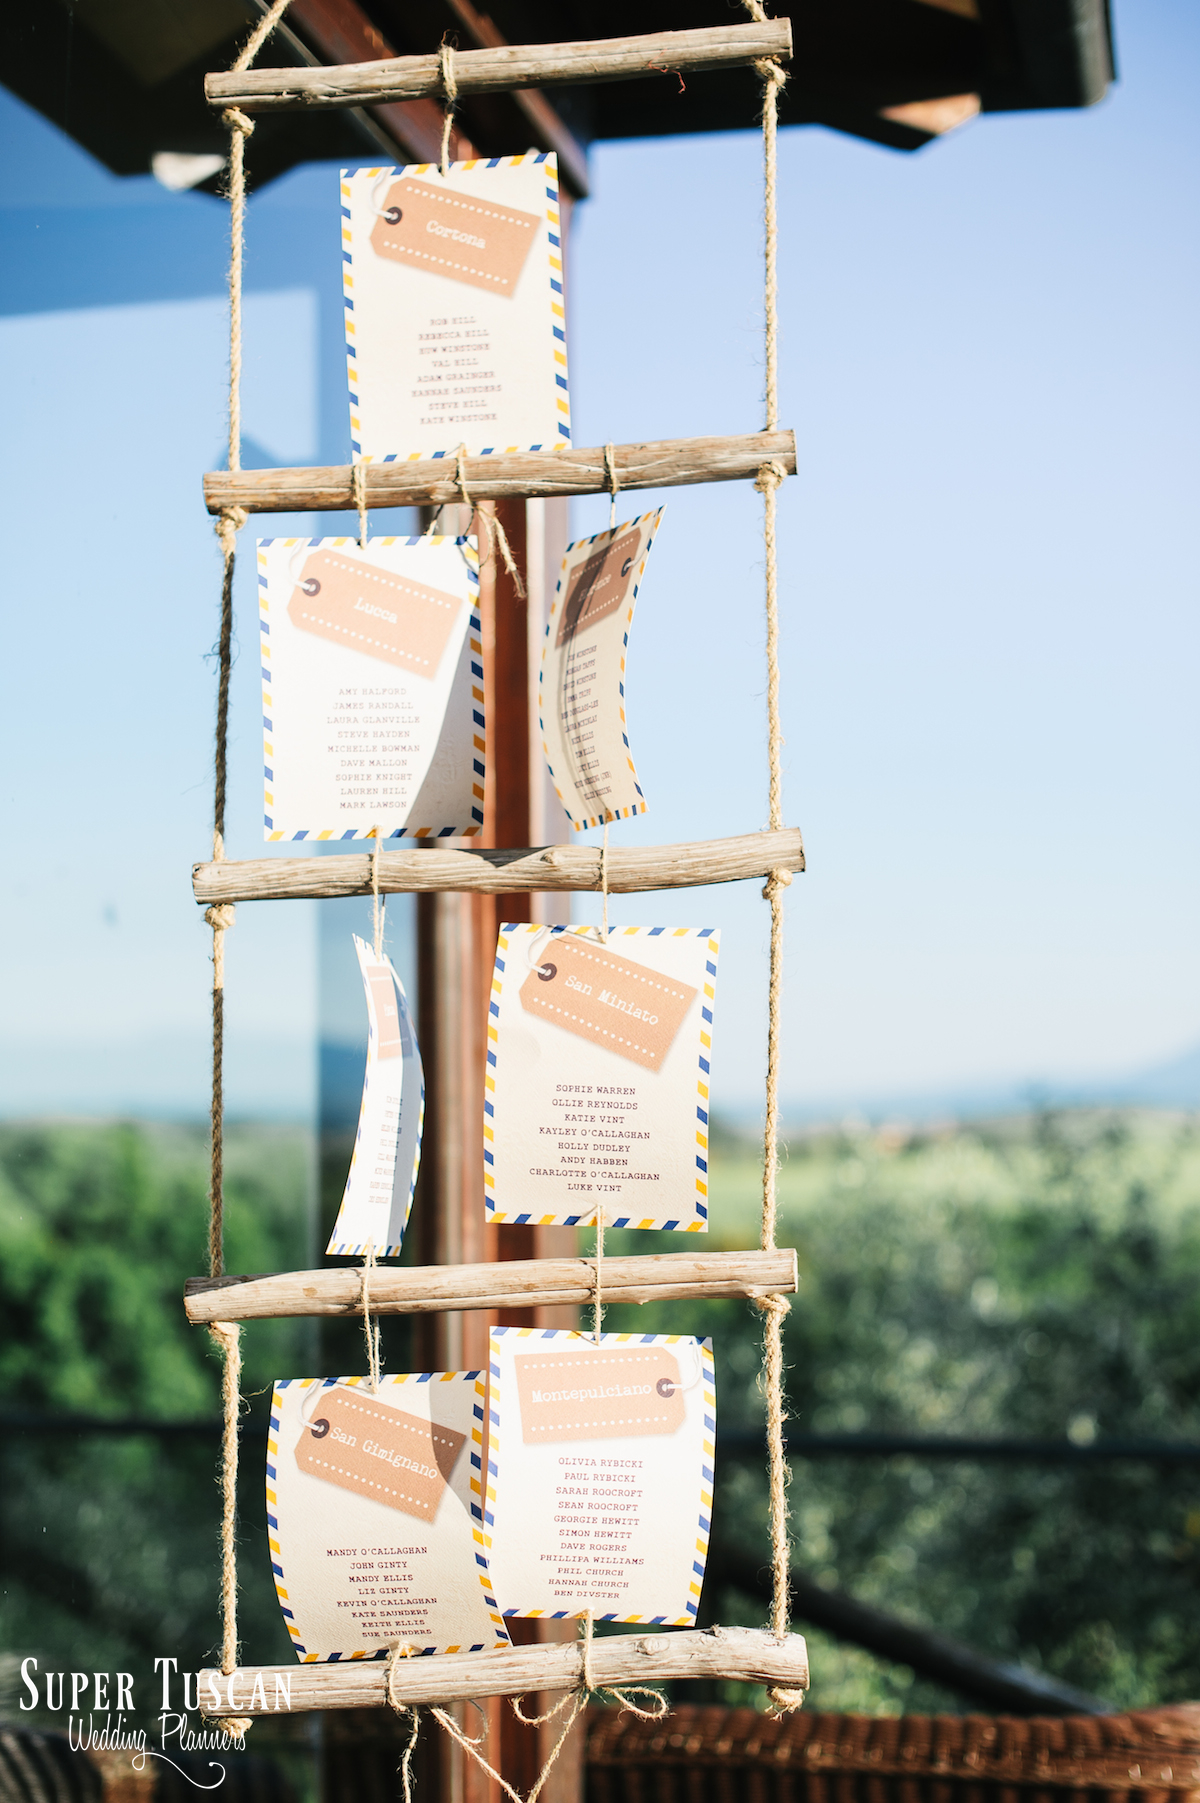 390Wedding in Tuscany Cortona